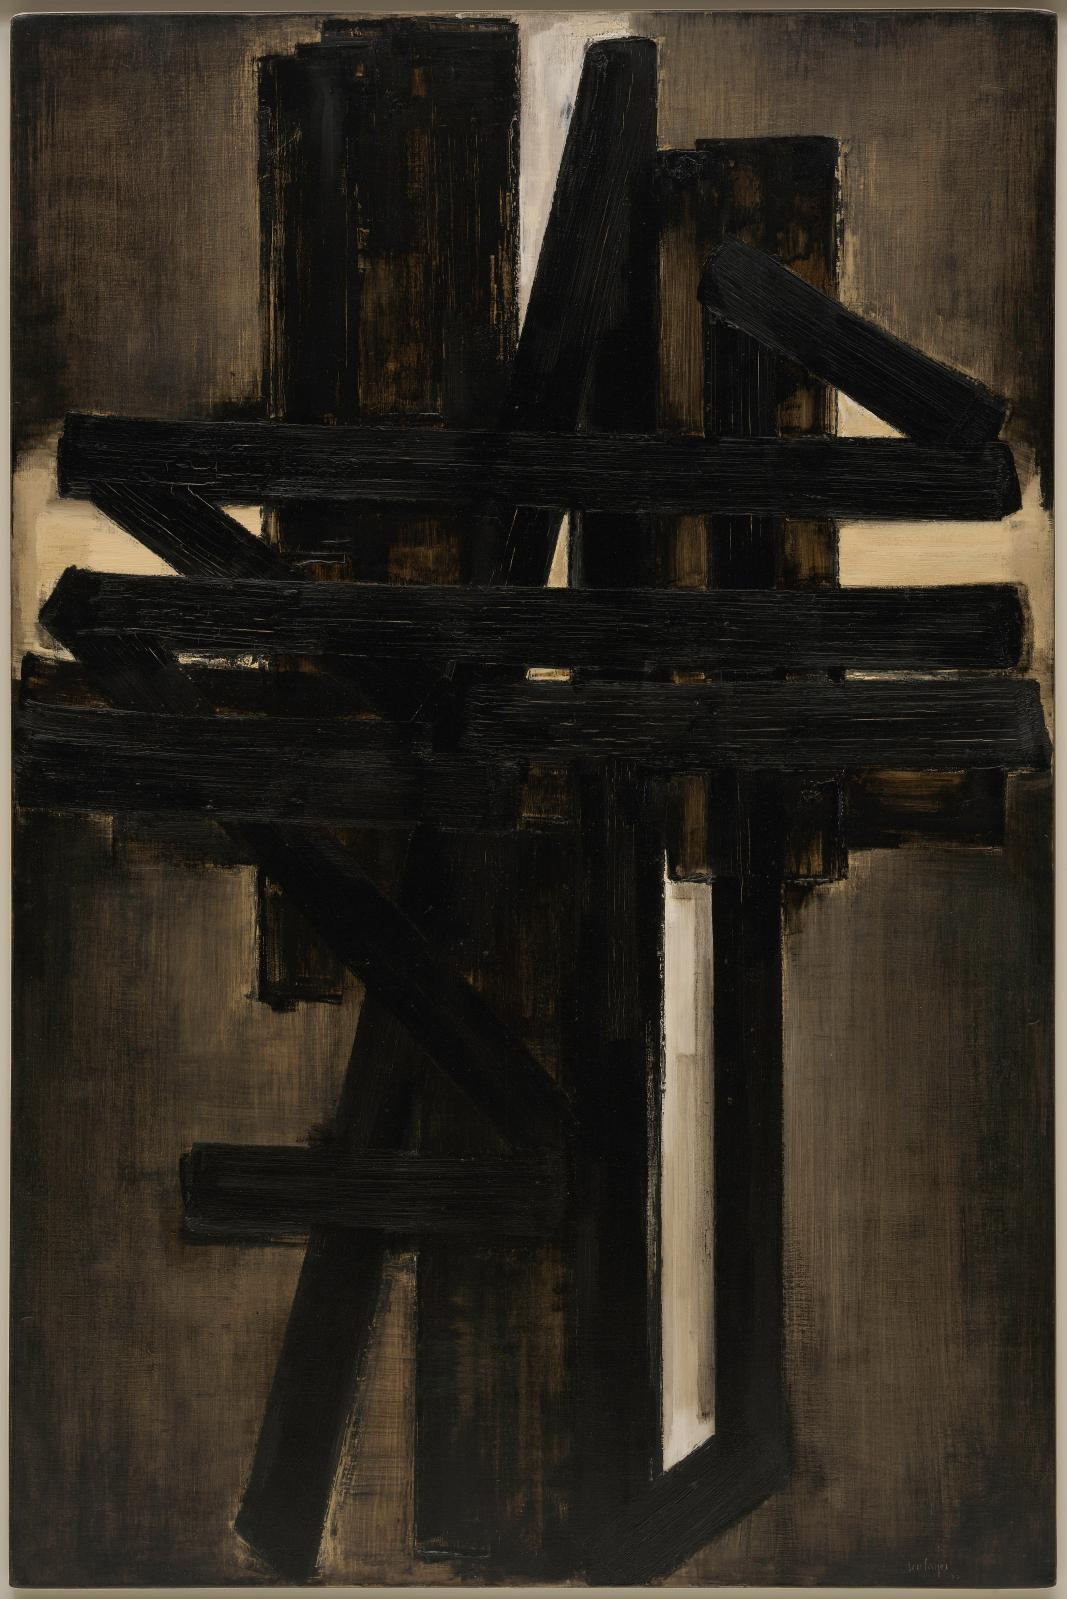 Pierre Soulages, Peinture, 195 x 130 cm, mai 1953, New York, Solomon R. Guggenheim Museum. © Archives Soulages © ADAGP, Paris 2019